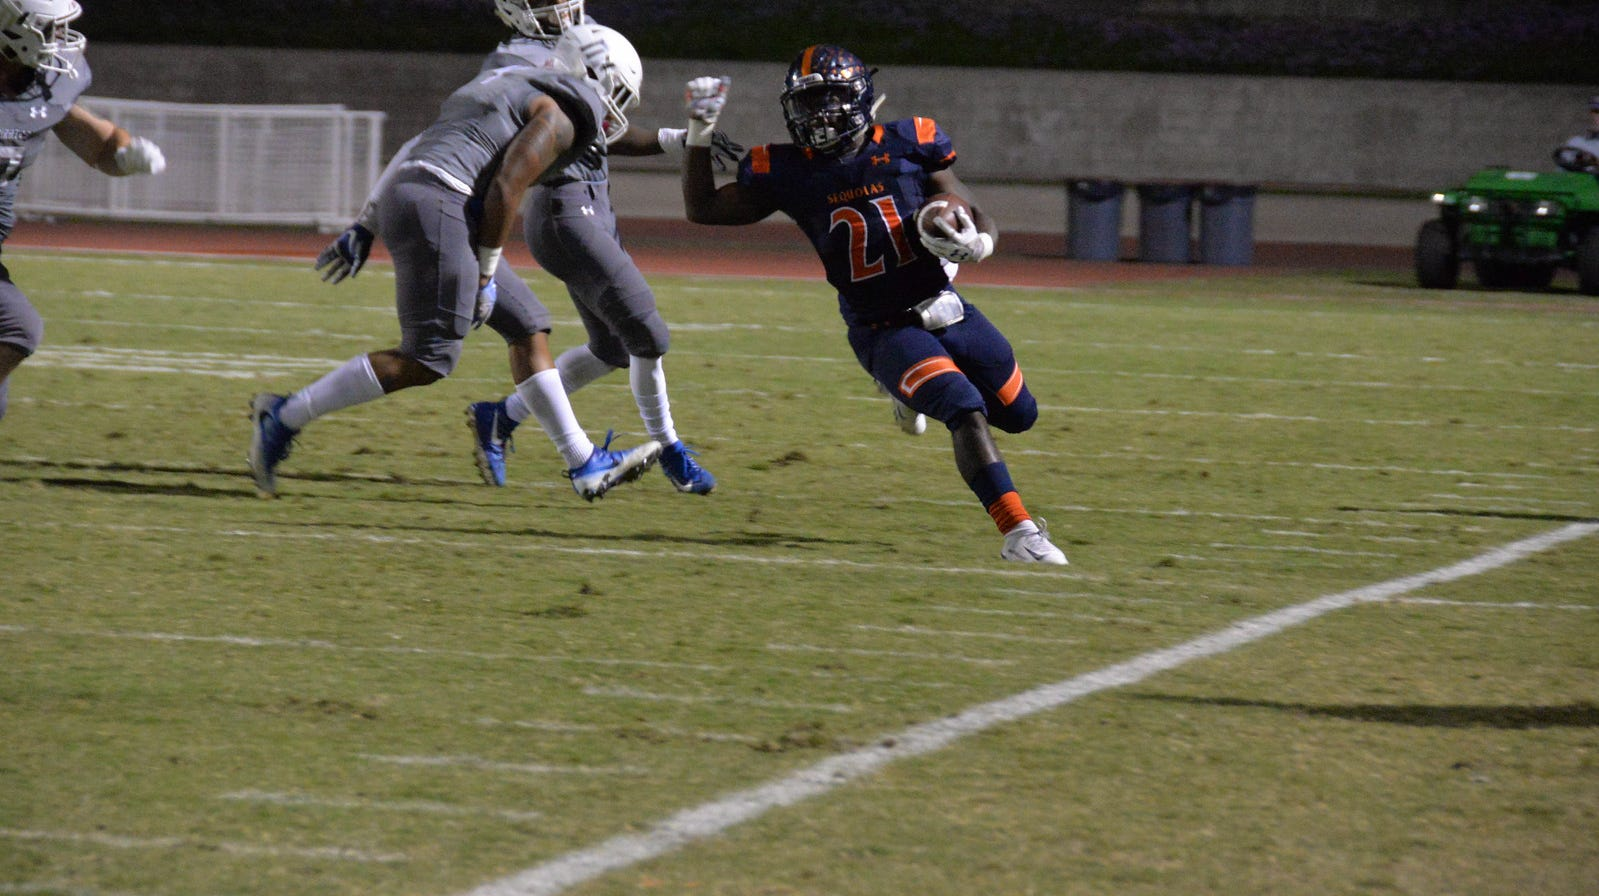 COS running back Deonte Green ran for 201 yards in the Giants' win on Saturday.